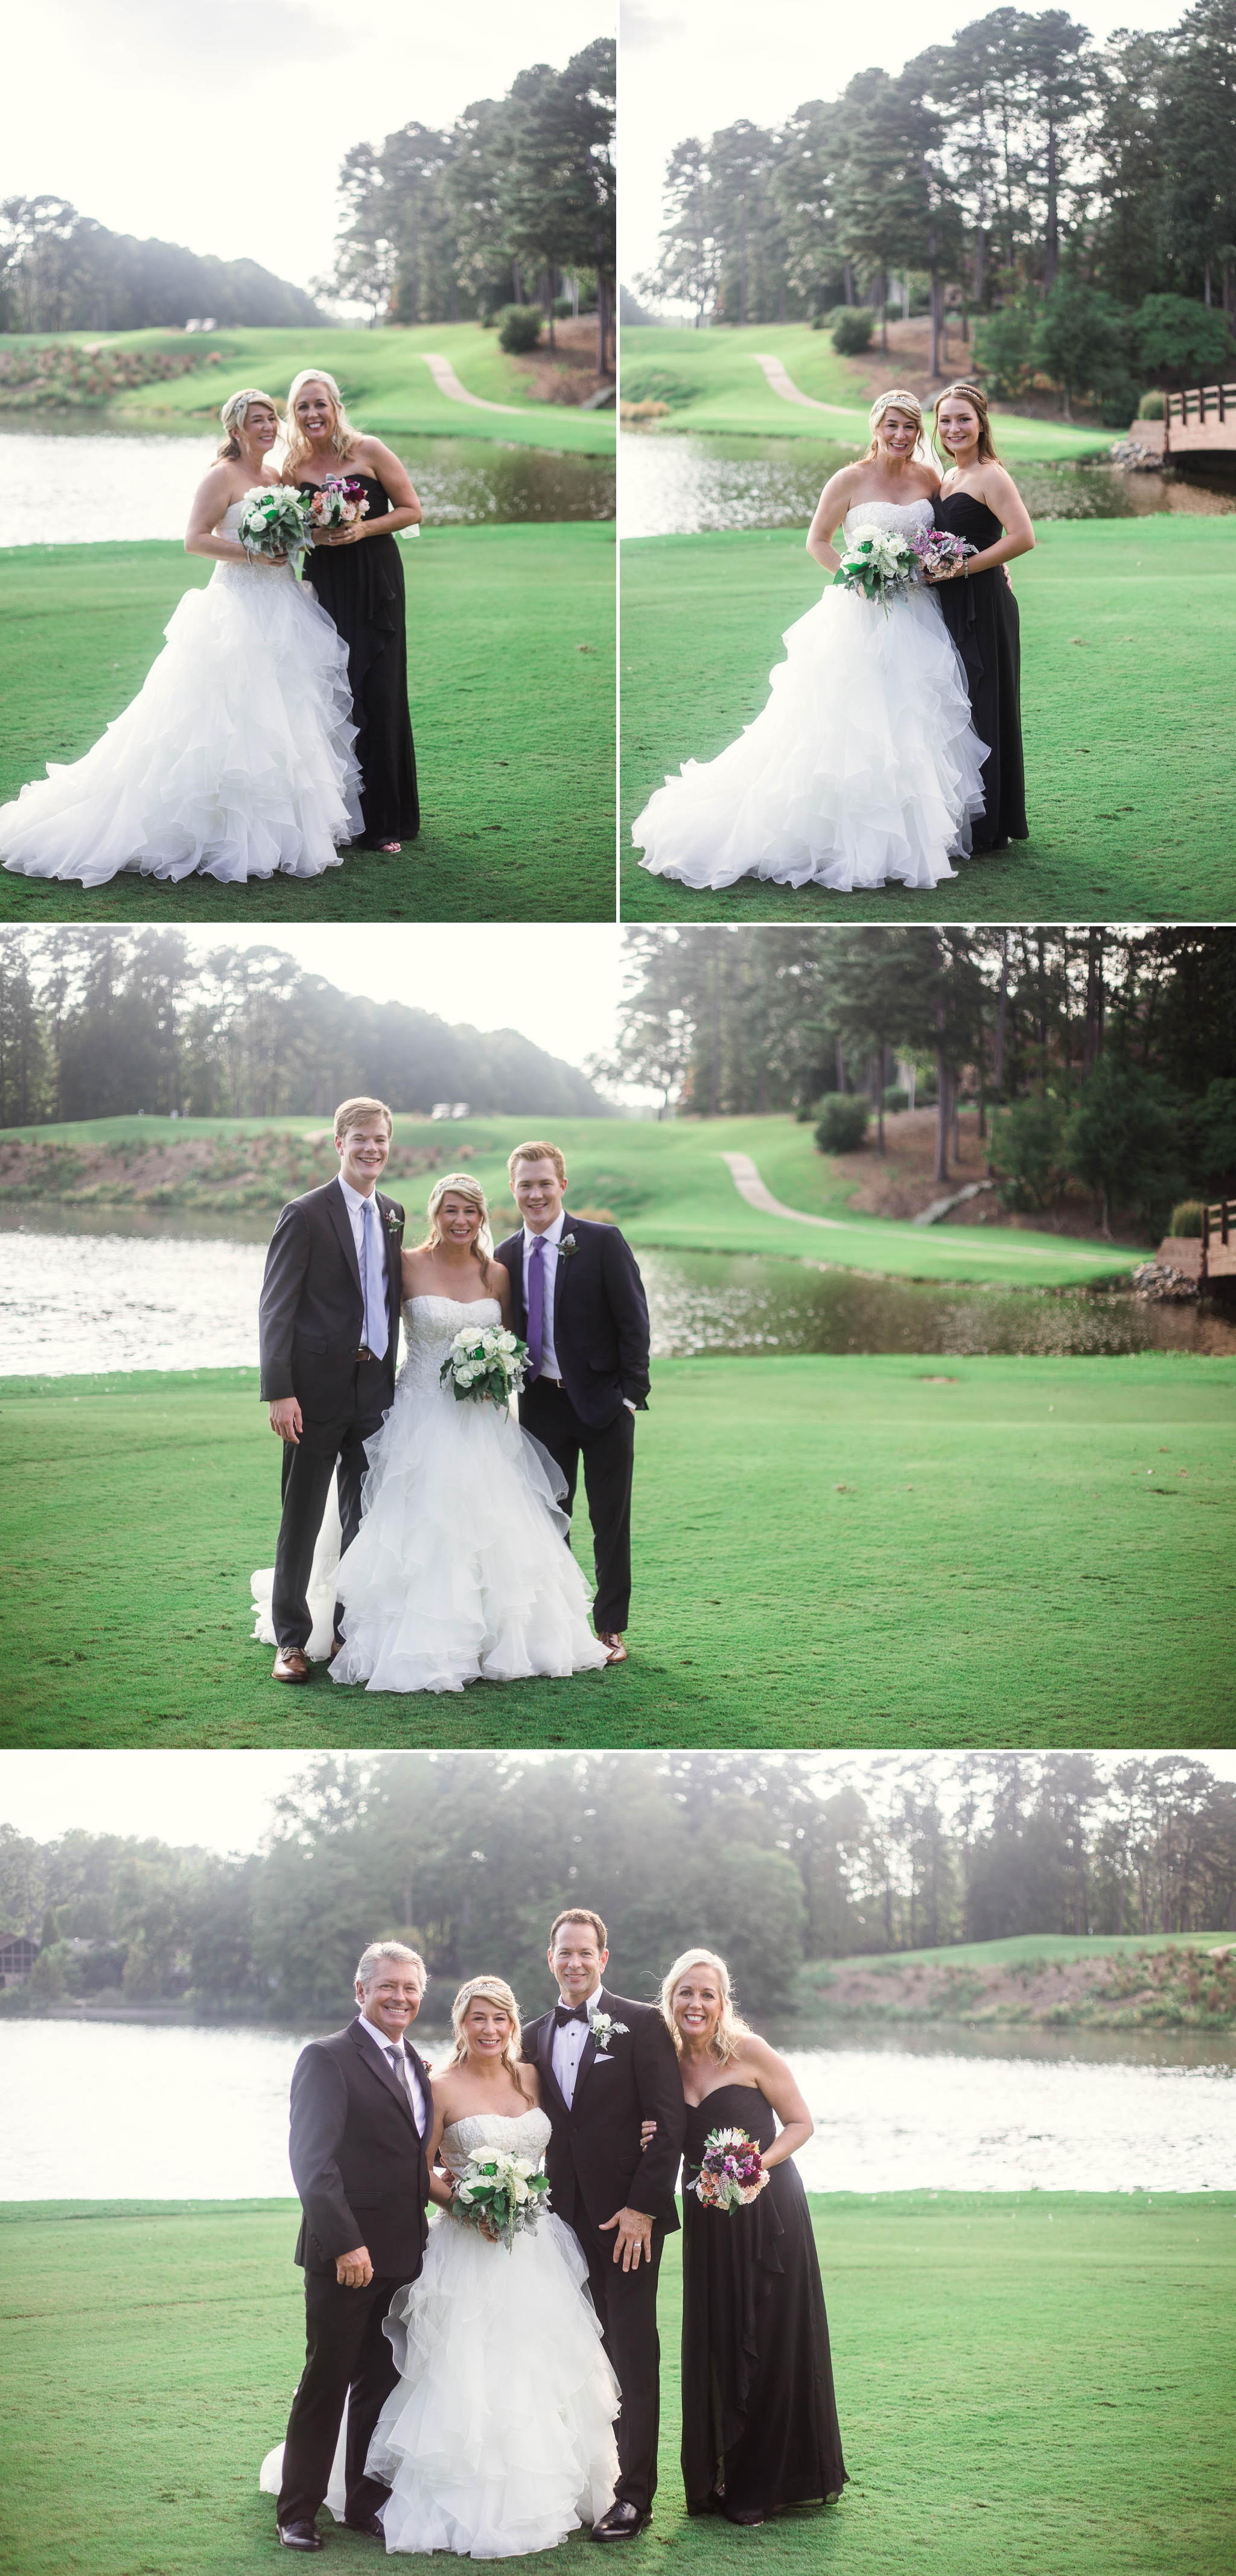 Wedding Party - Dona + Doug - MacGregor Downs Country Club in Cary, NC - Raleigh Wedding Photographer